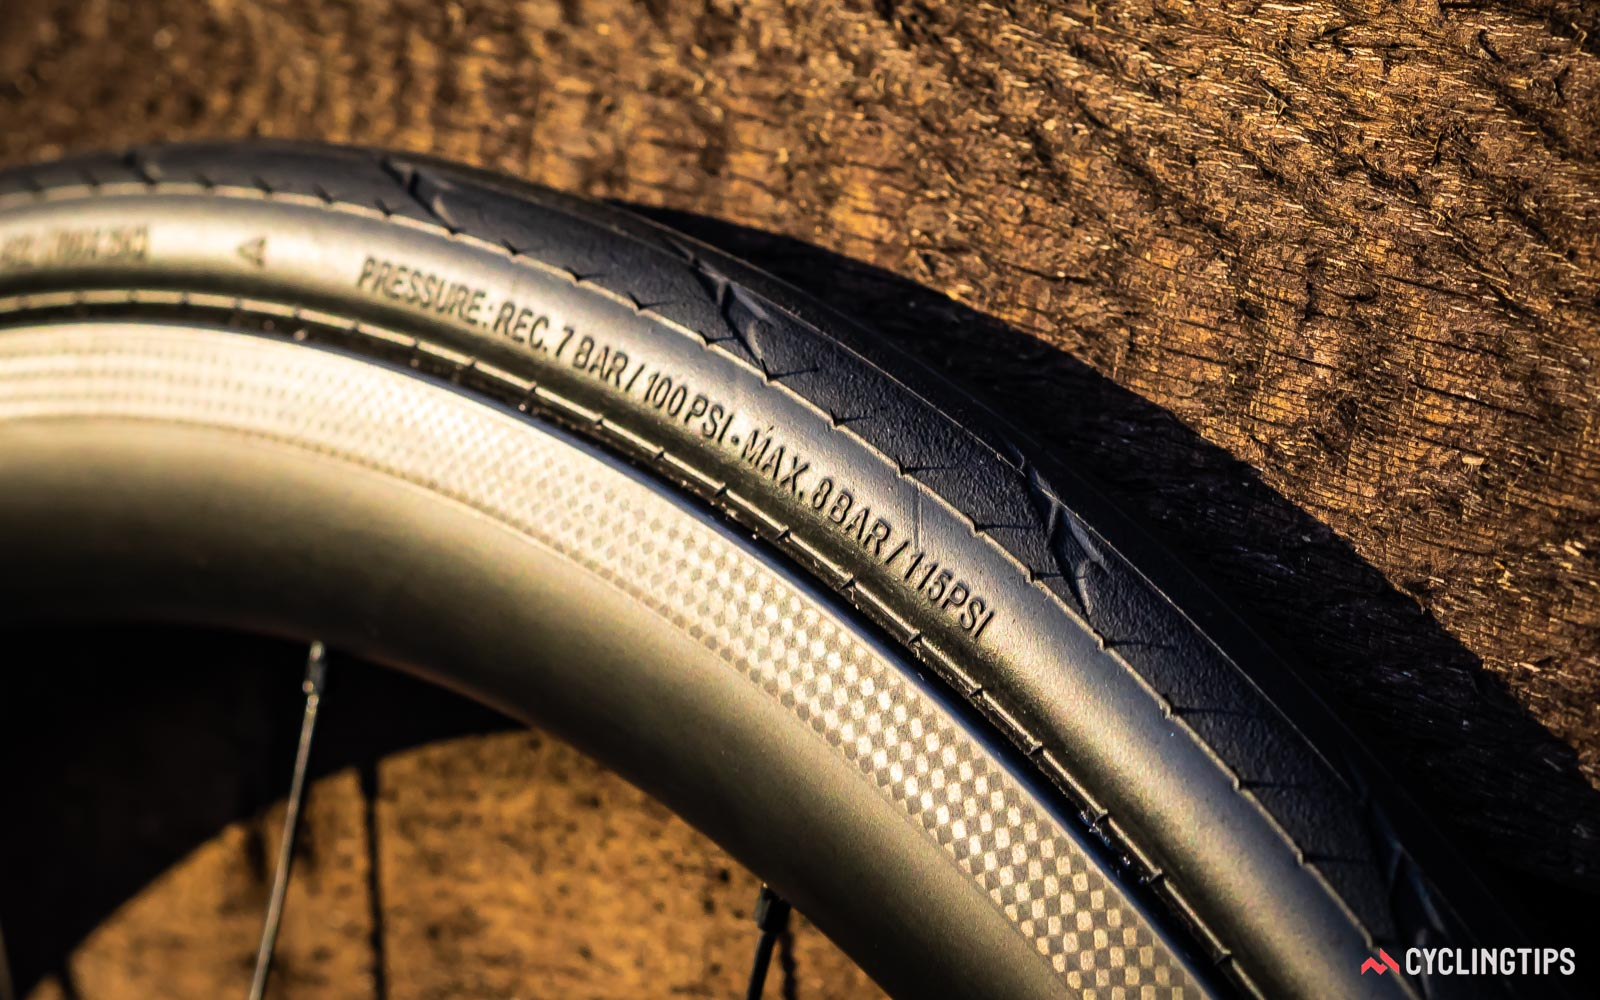 The choice of tyre pressure can have a big impact on the ride quality of a bike